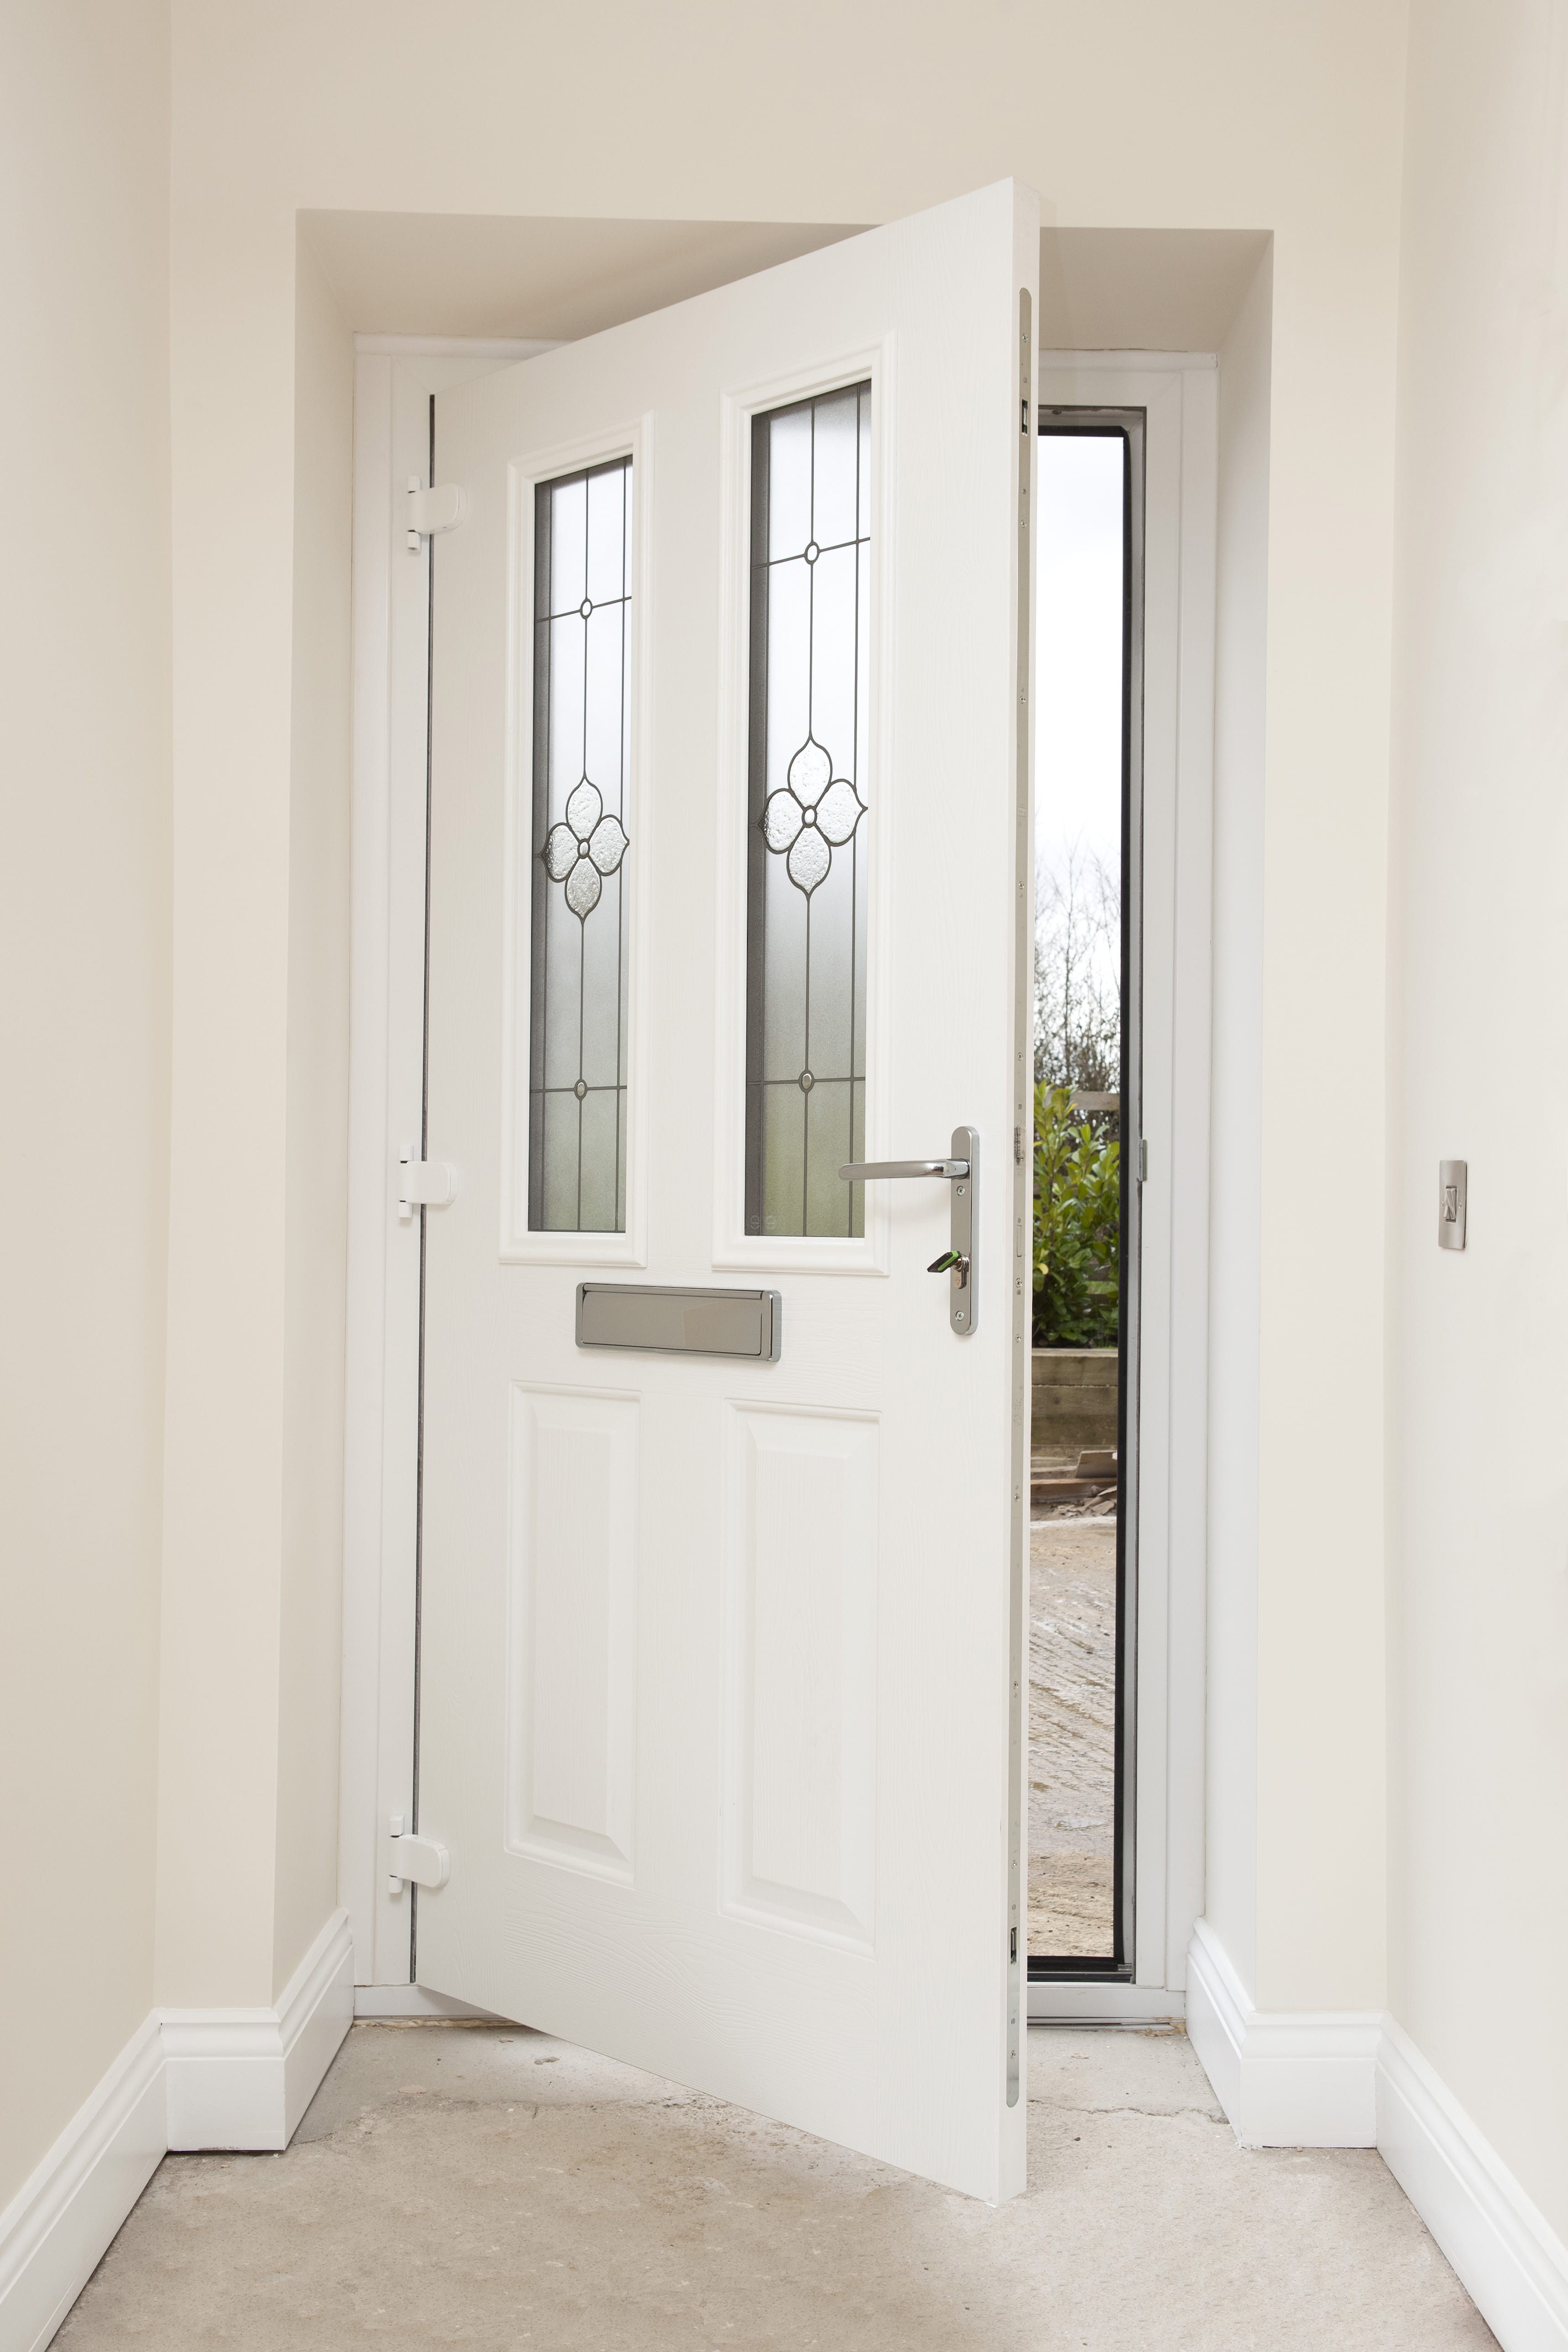 Upvc entrance and garden door porch gloucestershire cwm for Upvc company